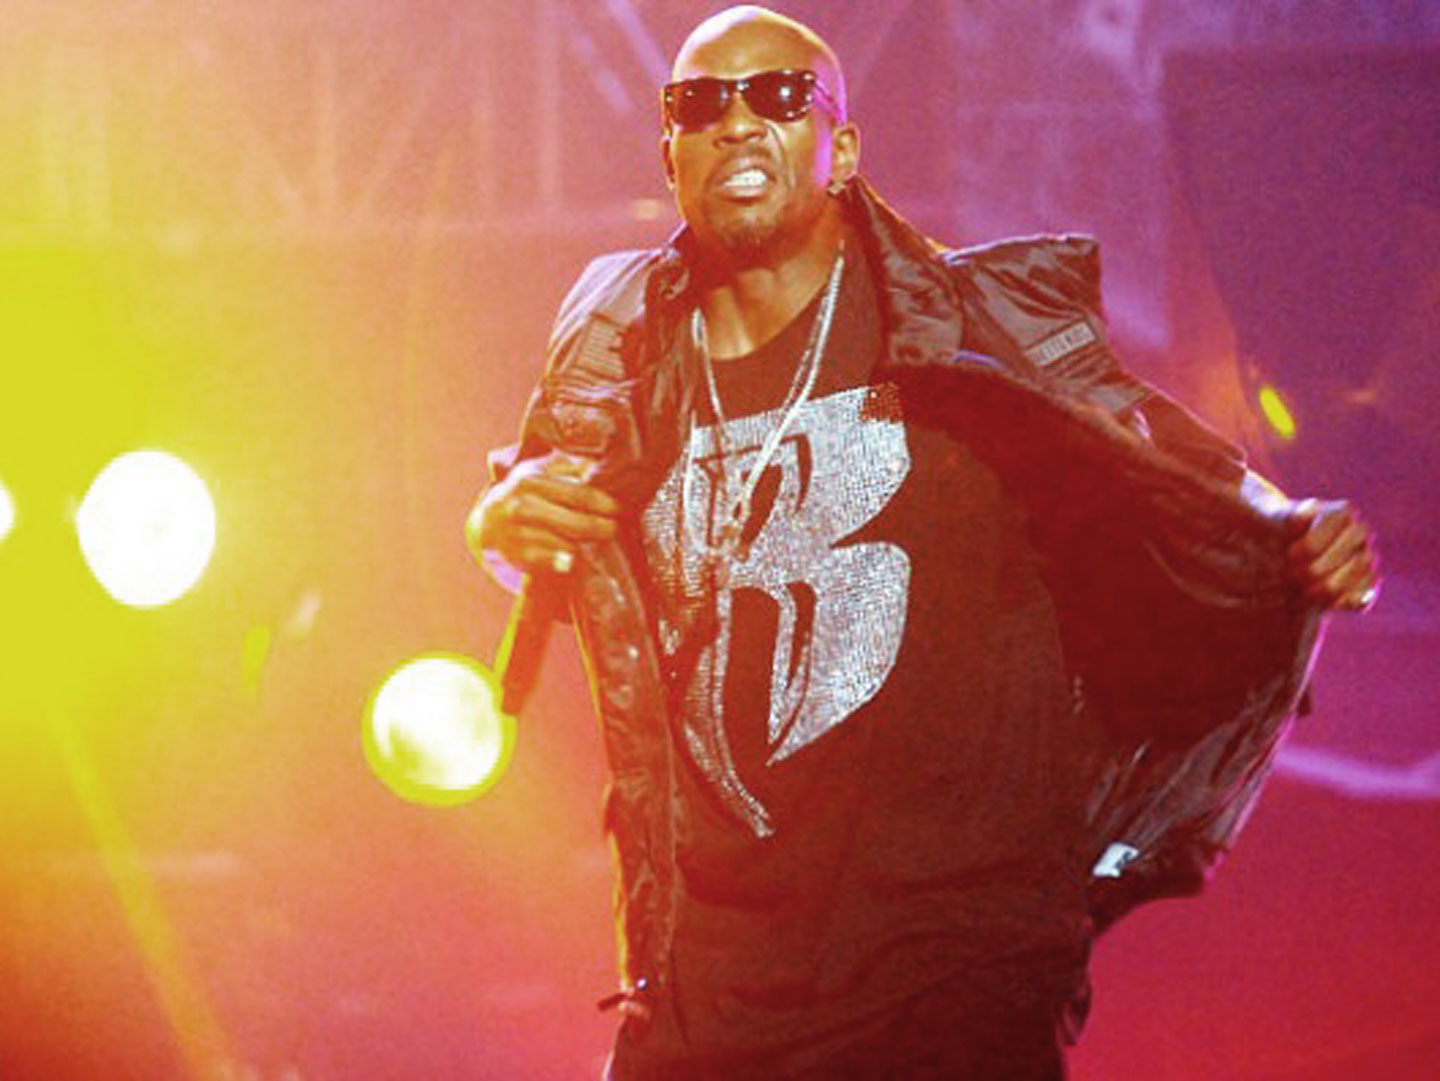 DMX live at the BET Awards